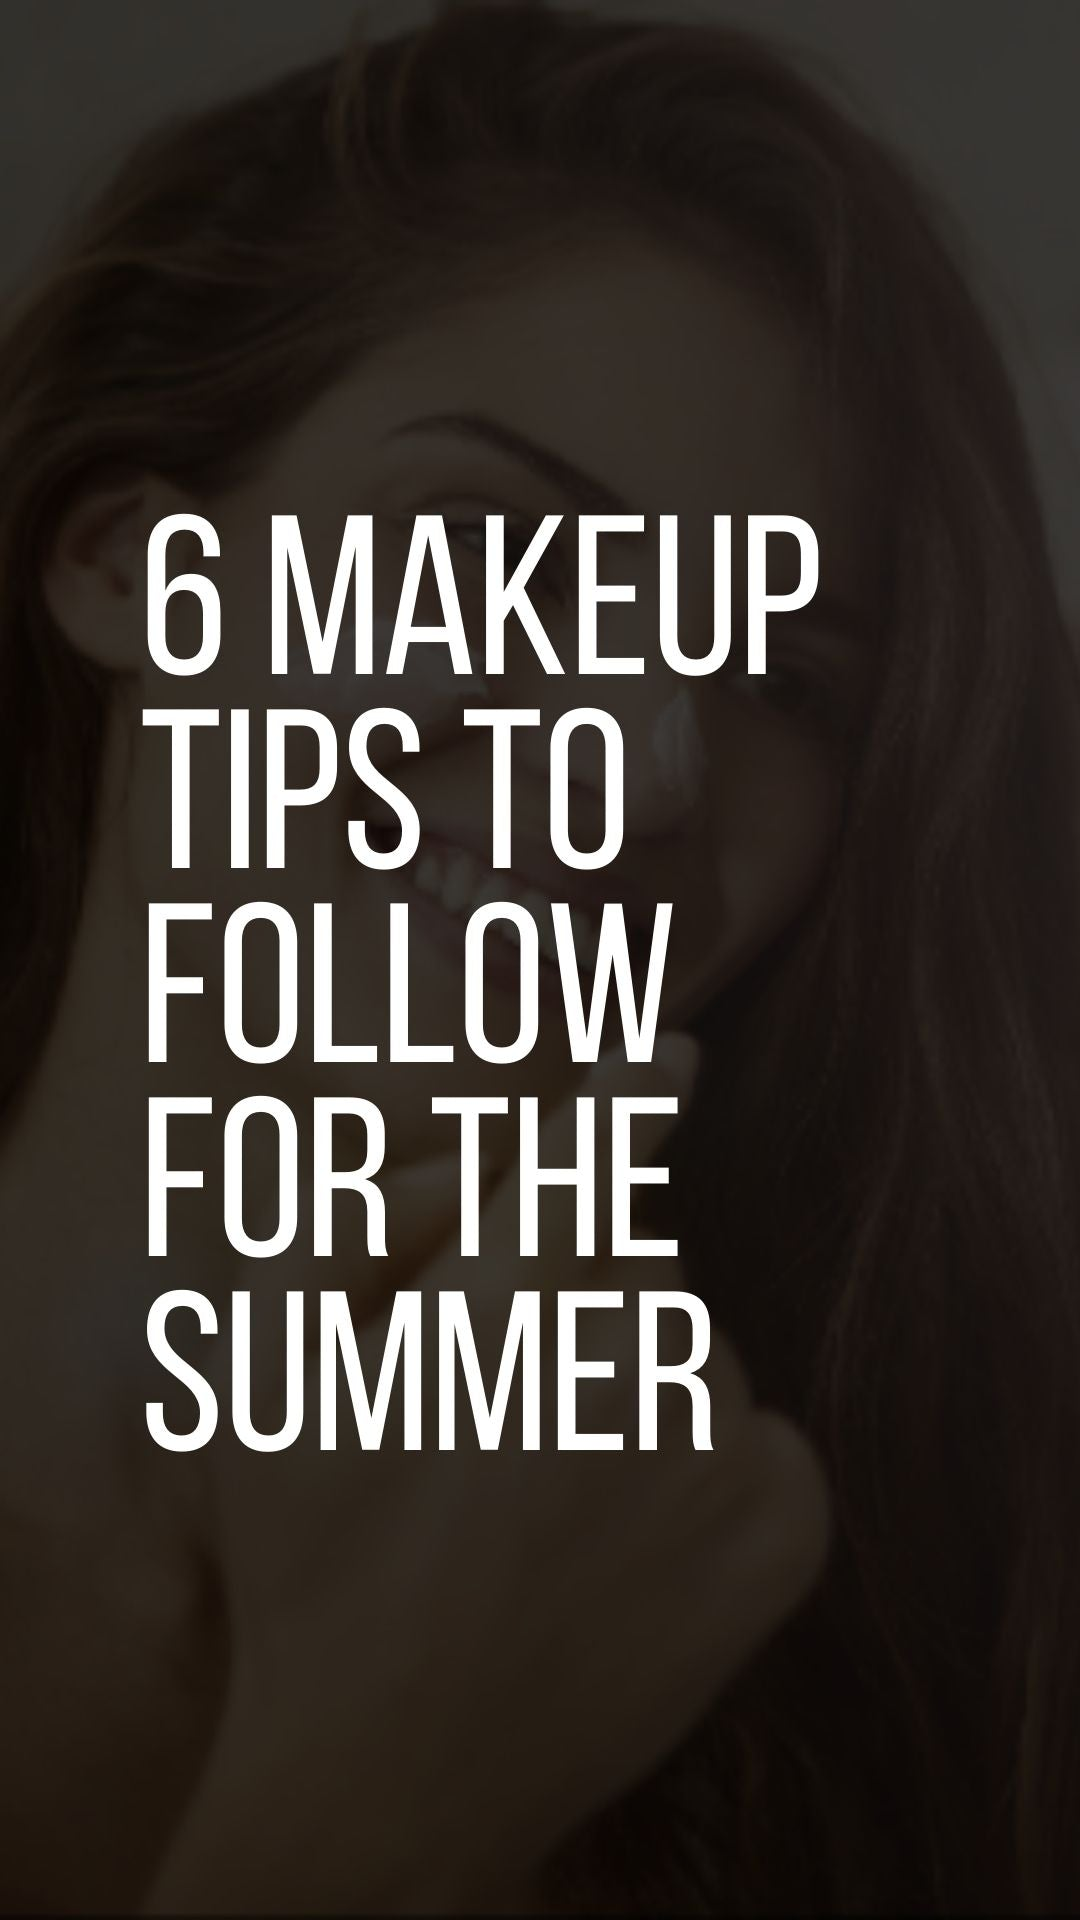 6 Makeup Tips to Follow for the Summer